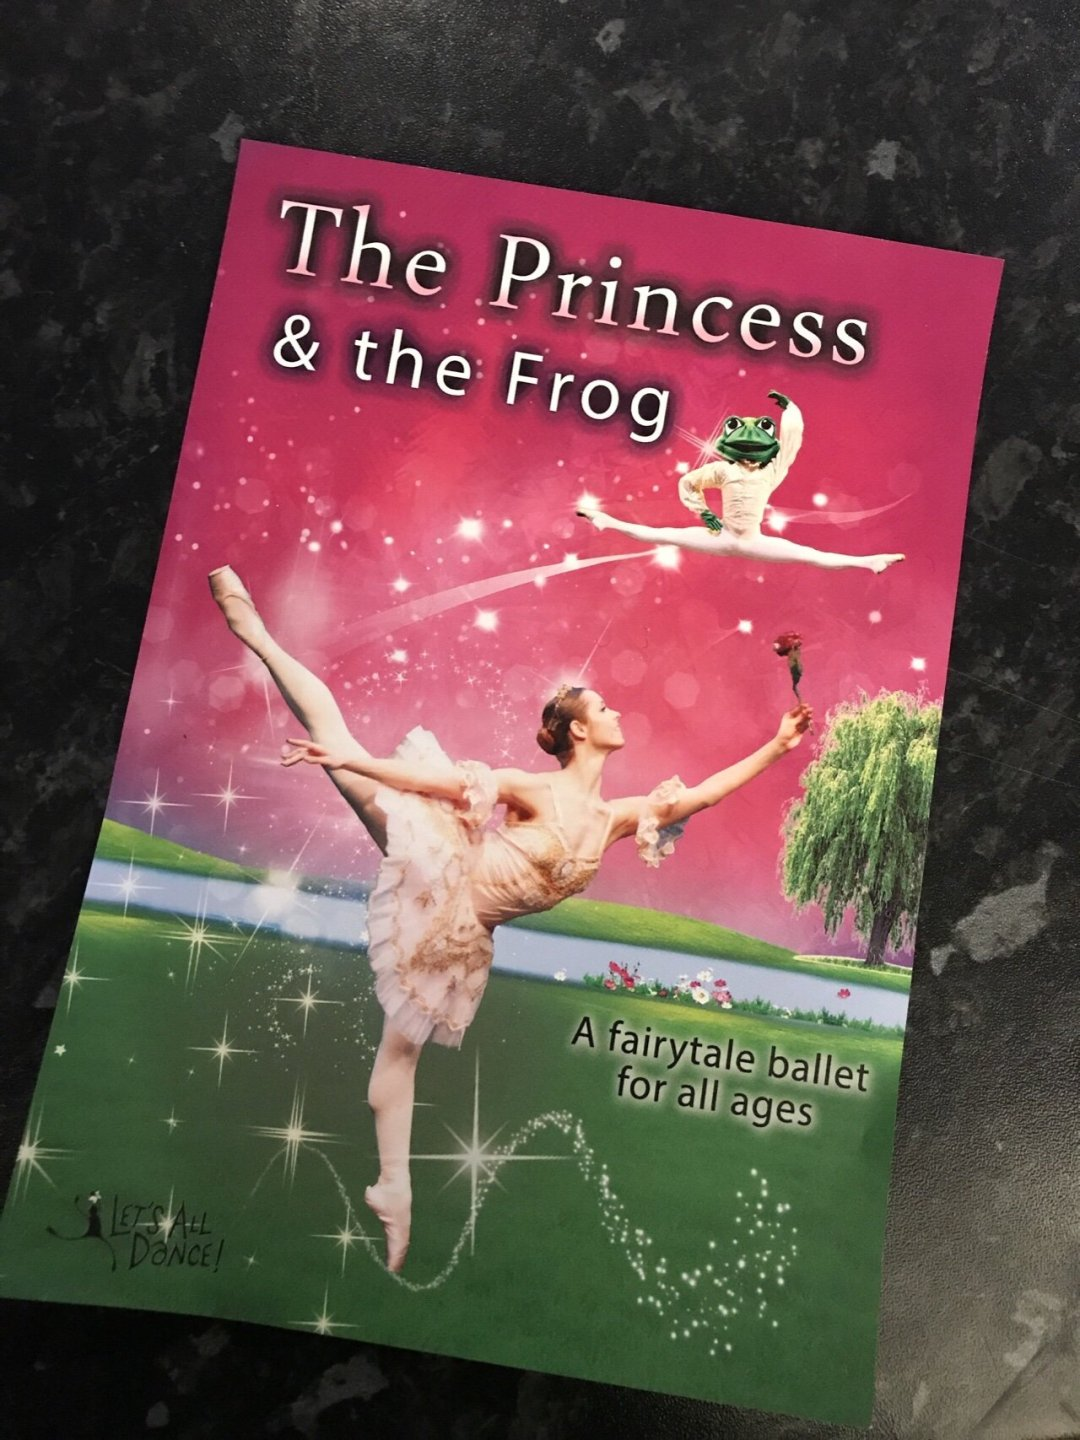 The princess and the frog first ballet